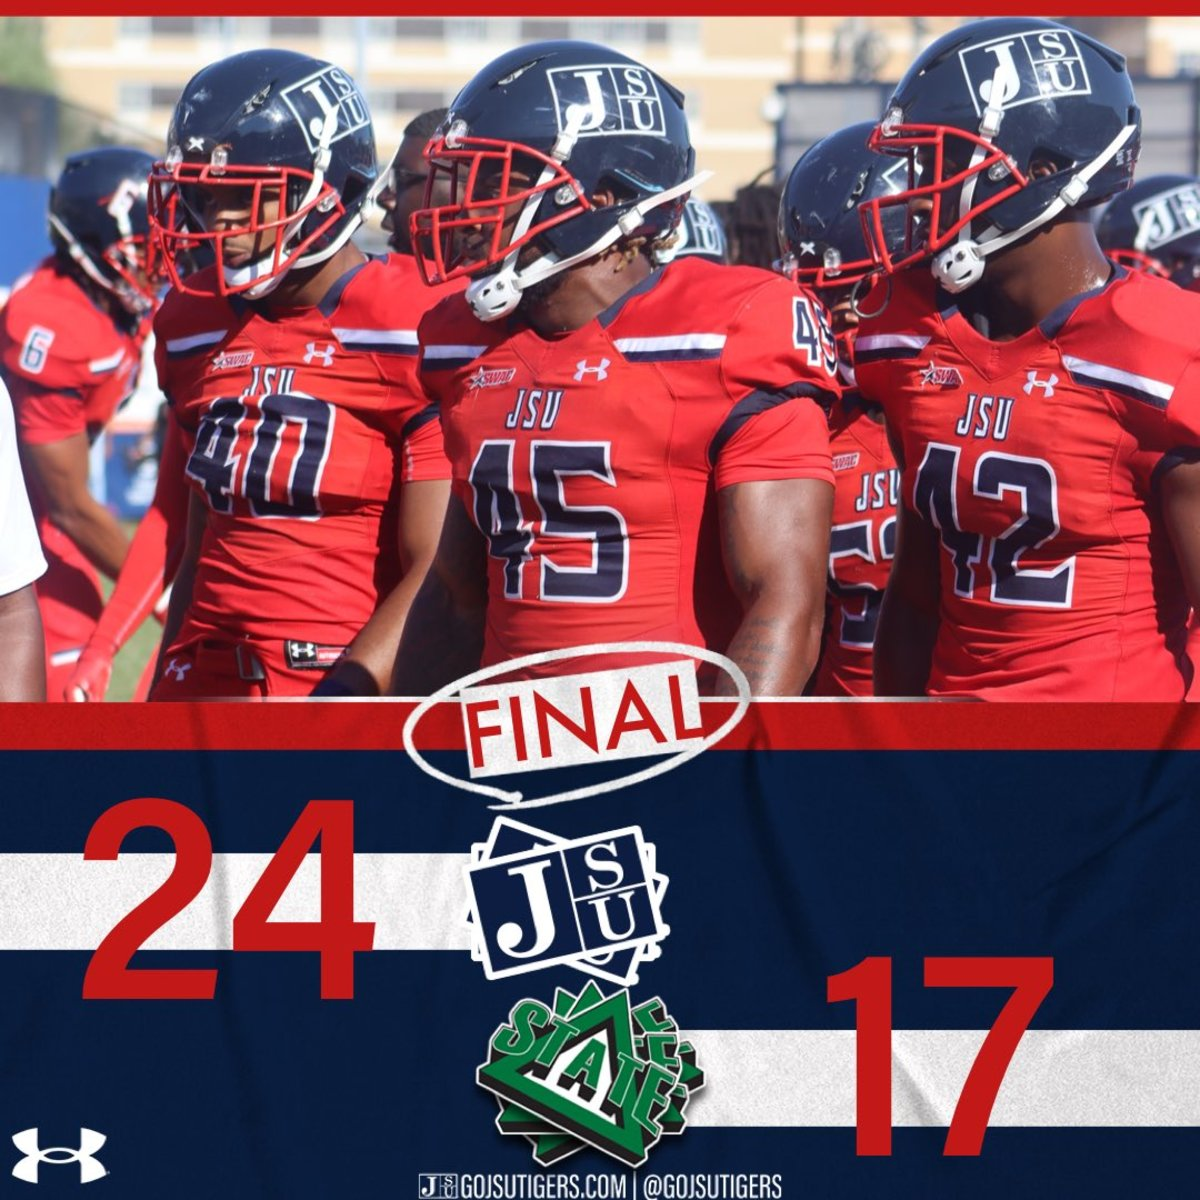 Jackson State Wins Over Delta State